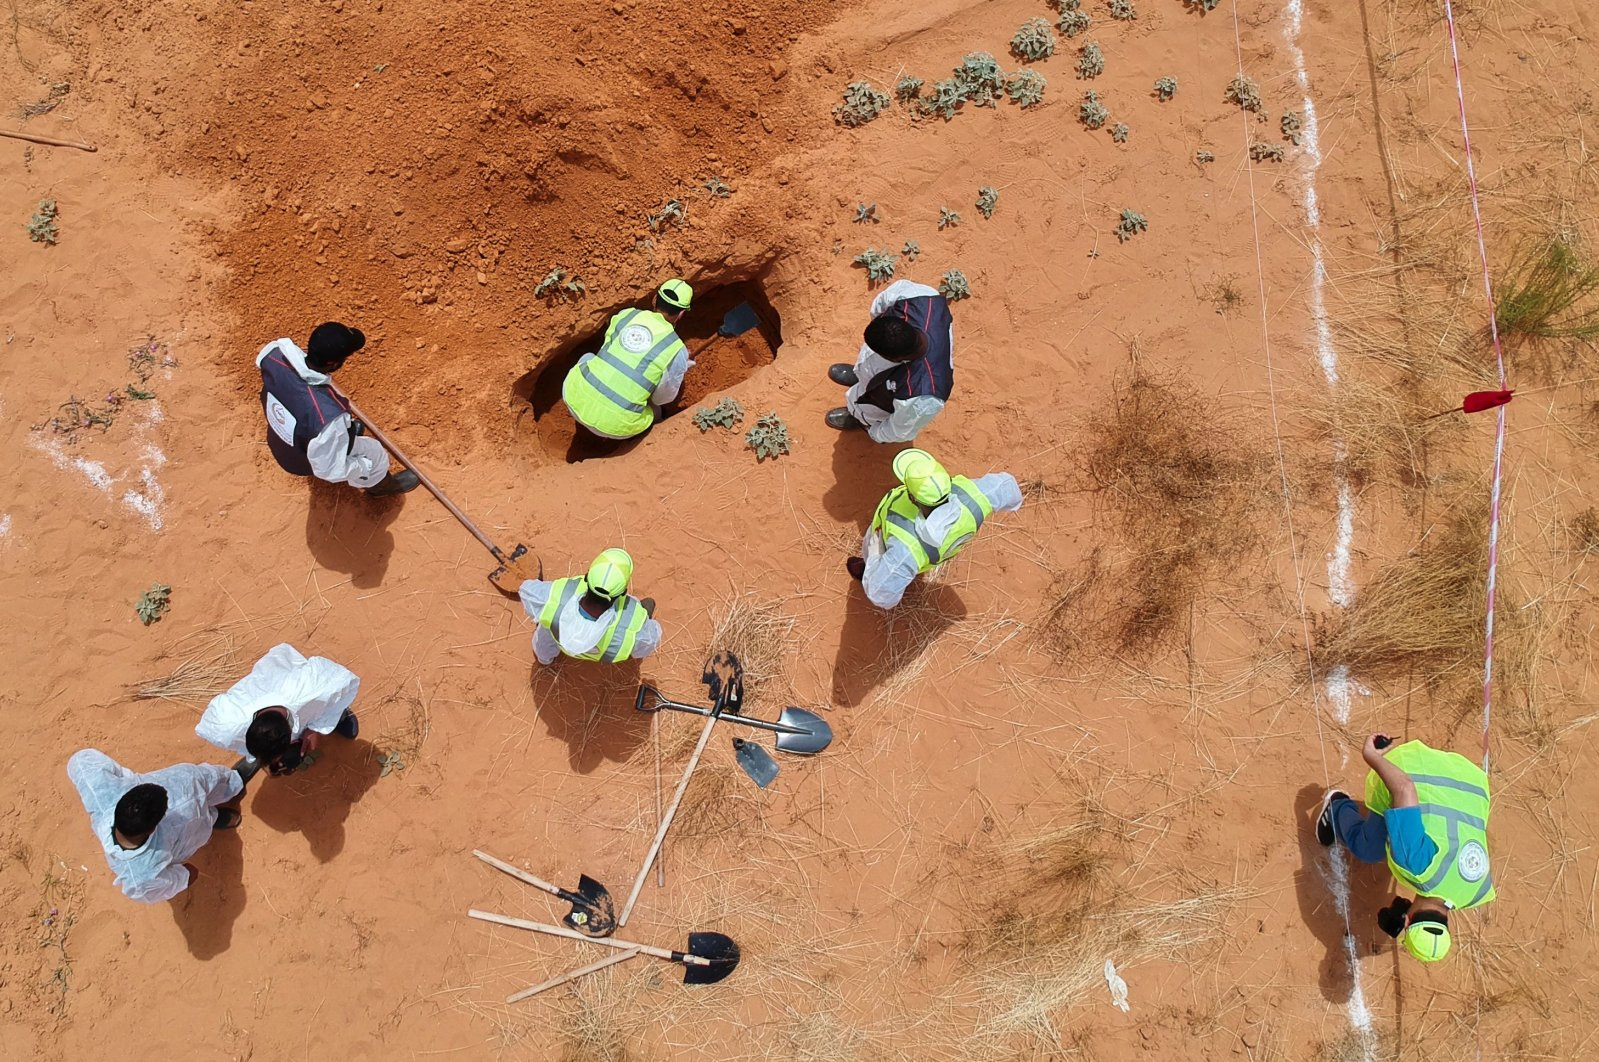 An aerial view shows Libyan experts searching for human remains during the exhumation of mass graves in Tarhuna, a city recently retaken from forces loyal to putschist Gen. Khalifa Haftar, southeast of the capital Tripoli, Libya, June 23, 2020. (AFP Photo)